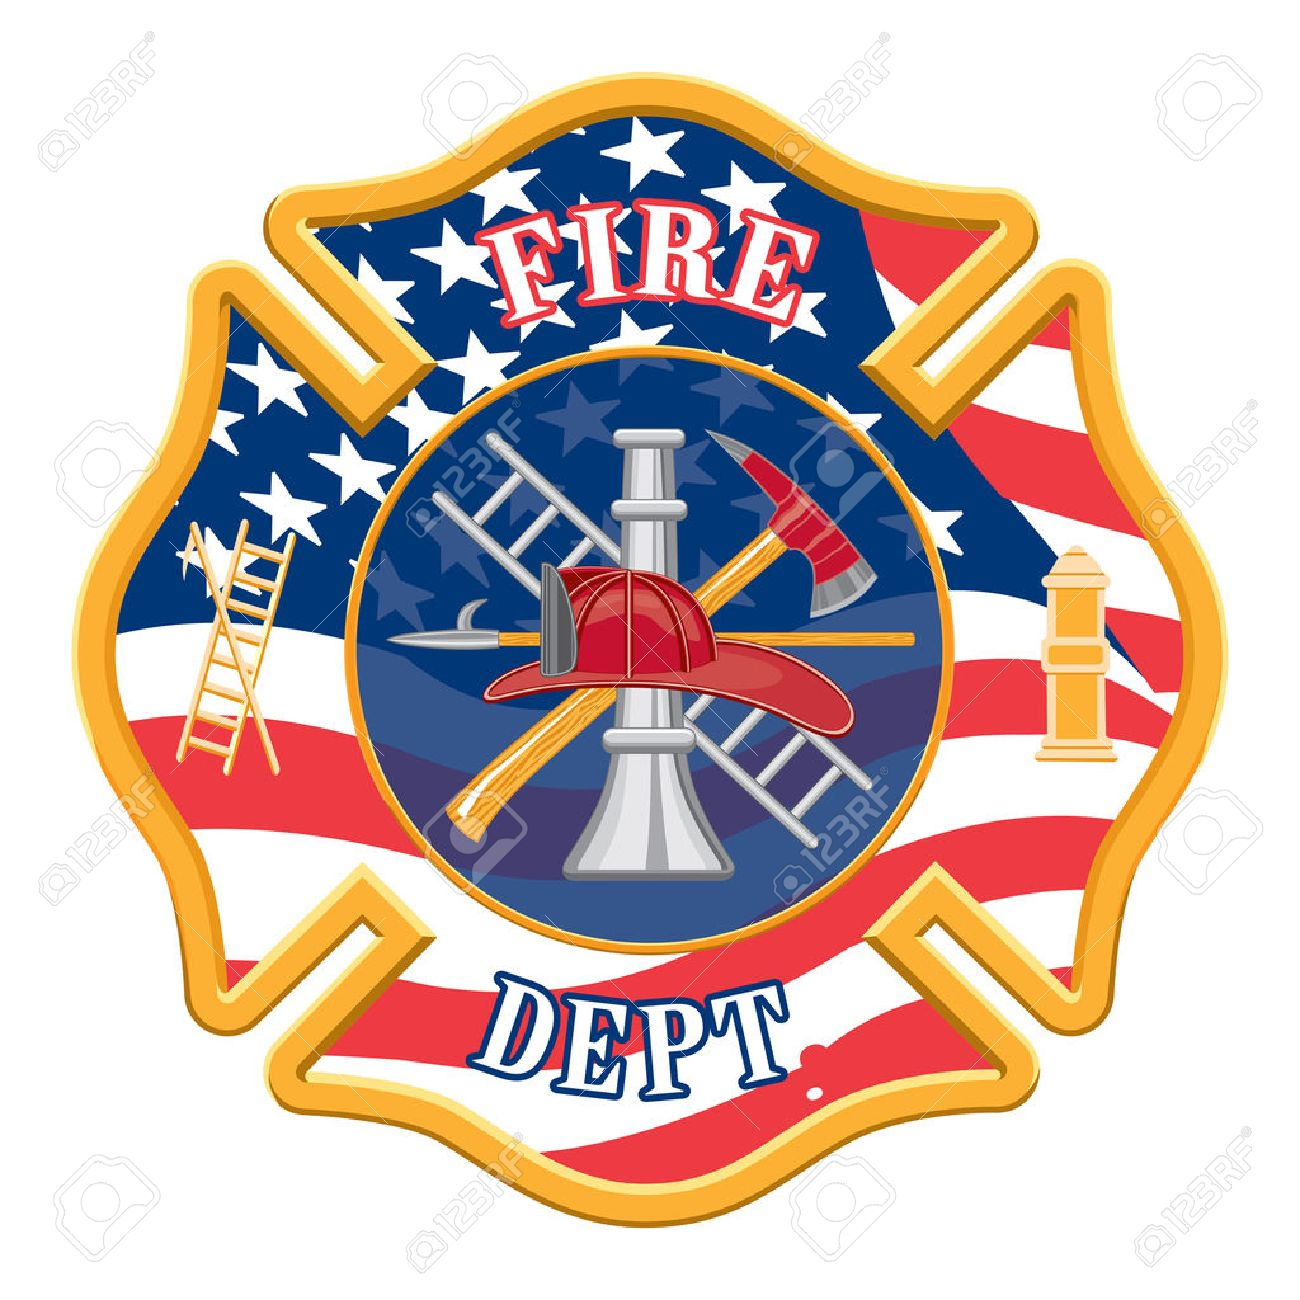 hight resolution of fire department cross is an illustration of a fire department or firefighter cross with the firefighters